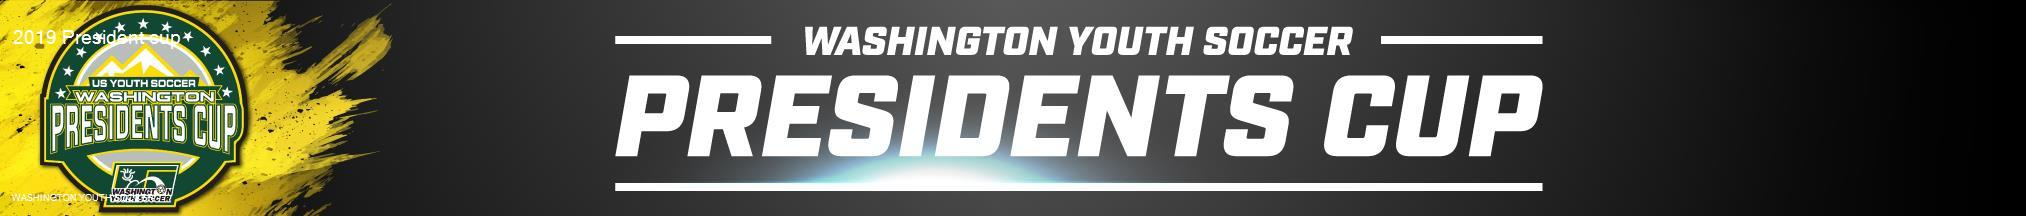 2019 Washington Youth Soccer President Cup banner